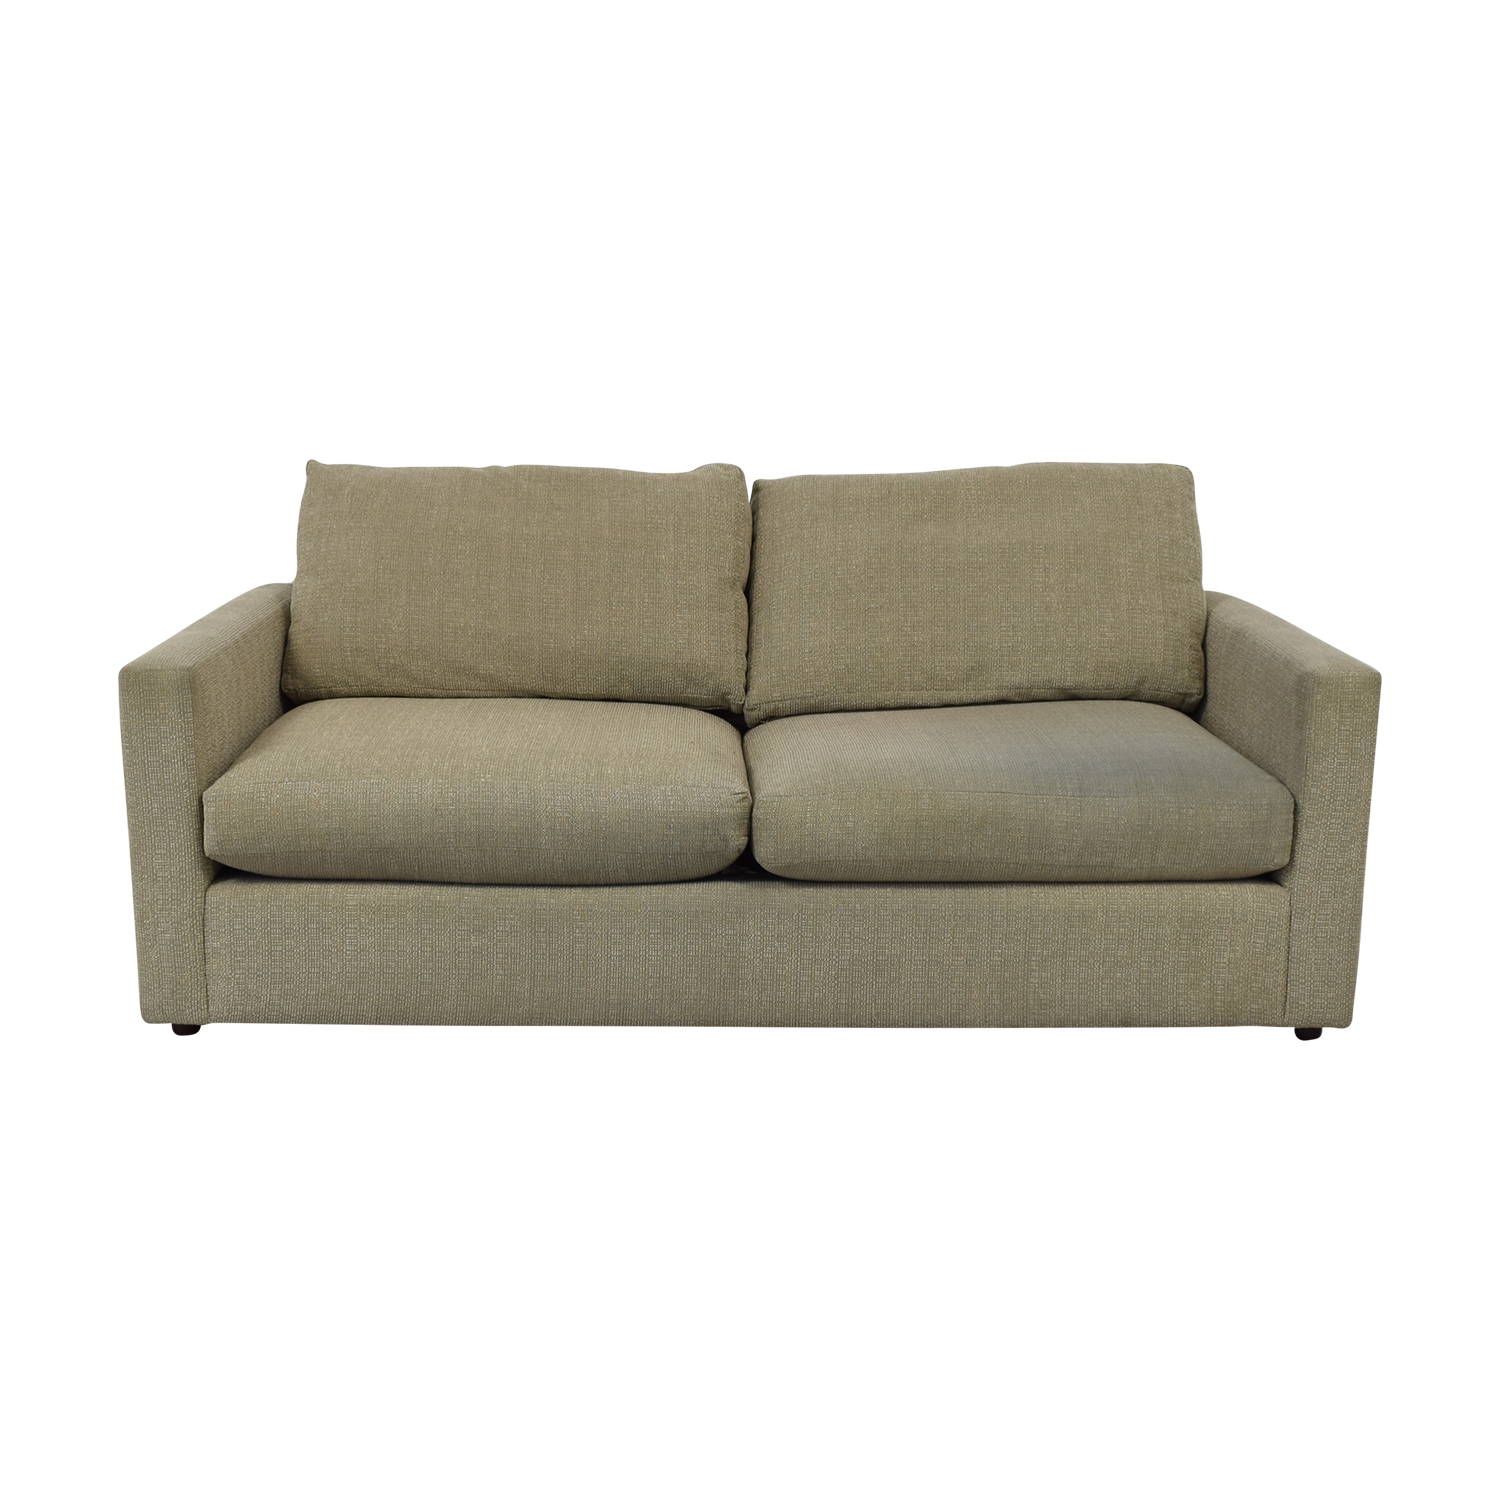 Macy's Macy's Two Cushion Sofa dimensions